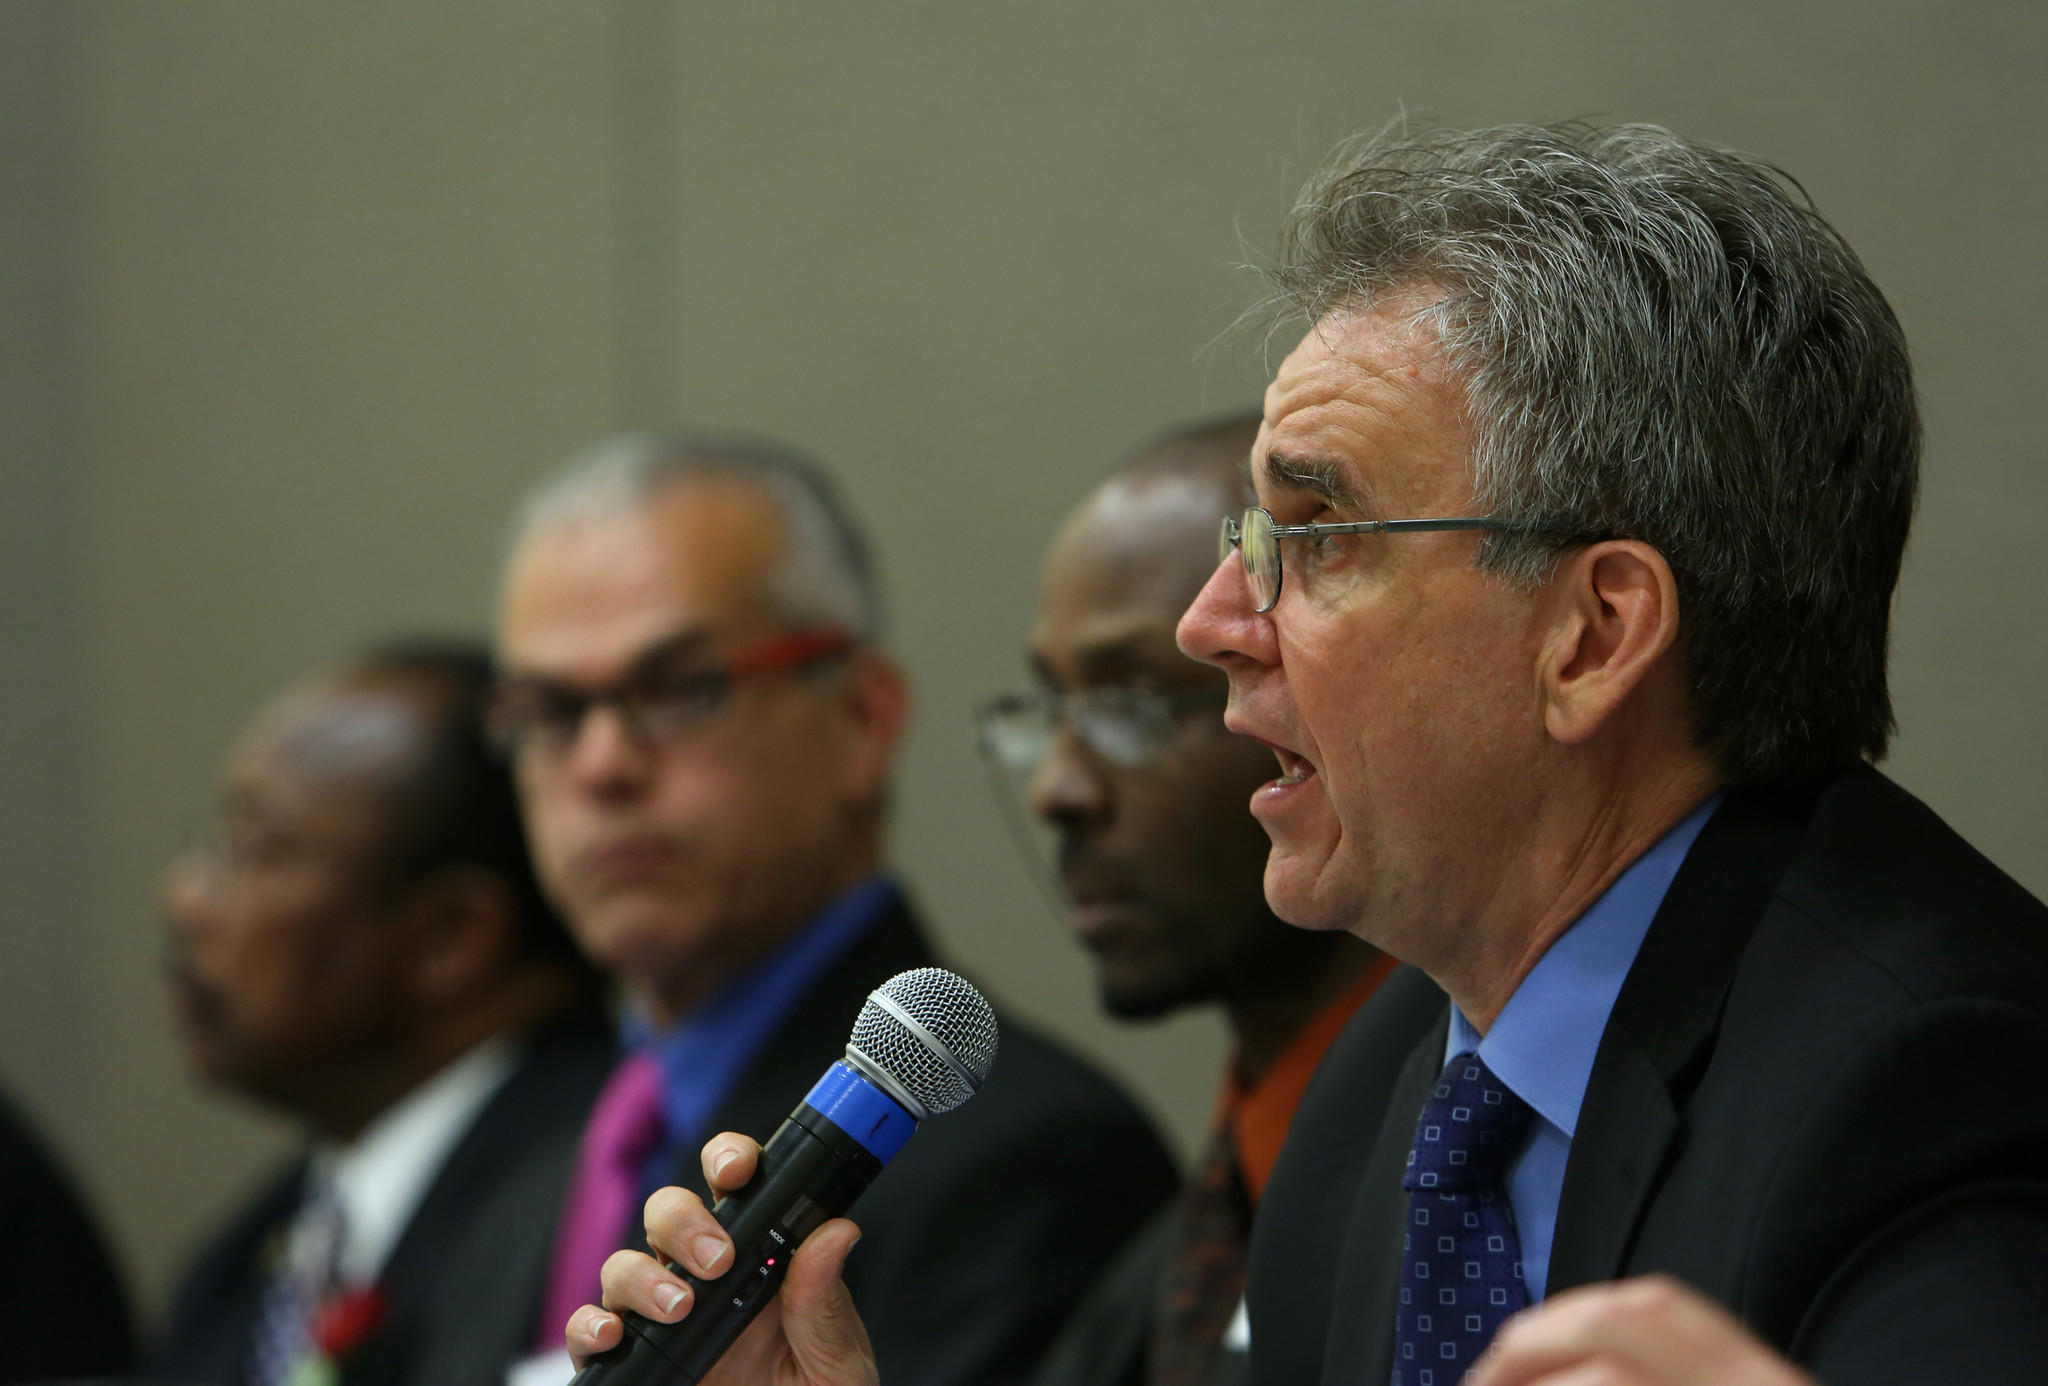 L.A. teachers union president Warren Fletcher, seen here at a candidates' forum, has ended his active campaigning for reelection.